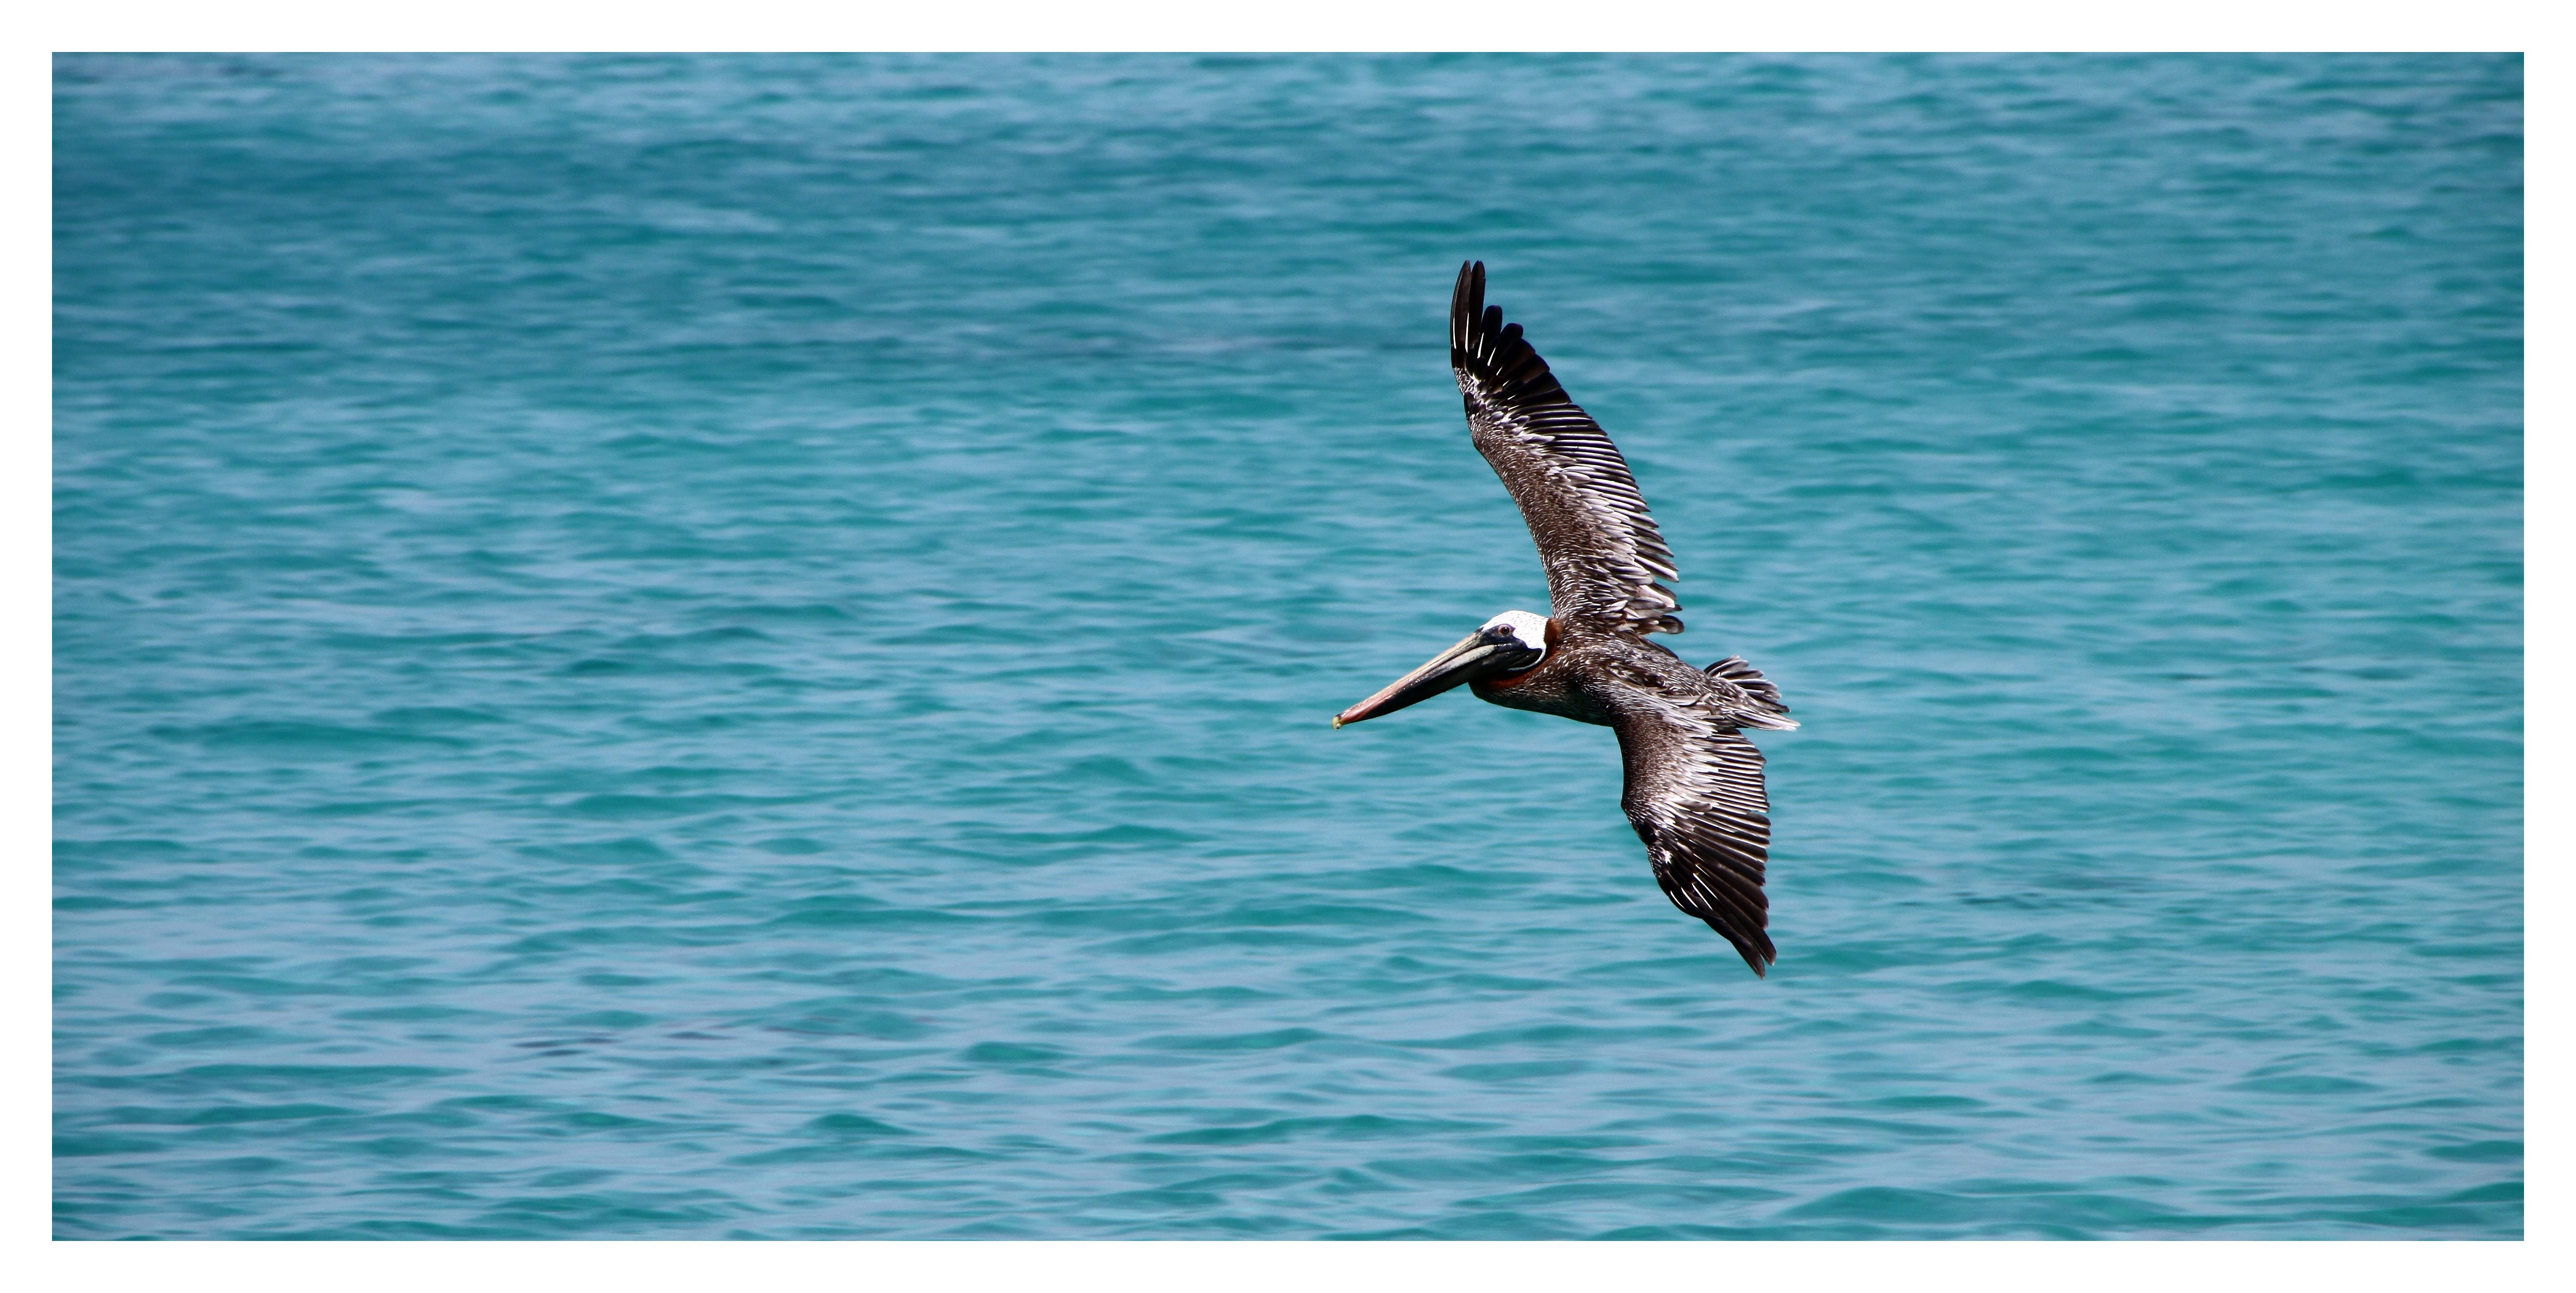 Black Sea Gulf Flying on Water Surface during Daytime, Bill, Bird, Flying, Ocean, HQ Photo